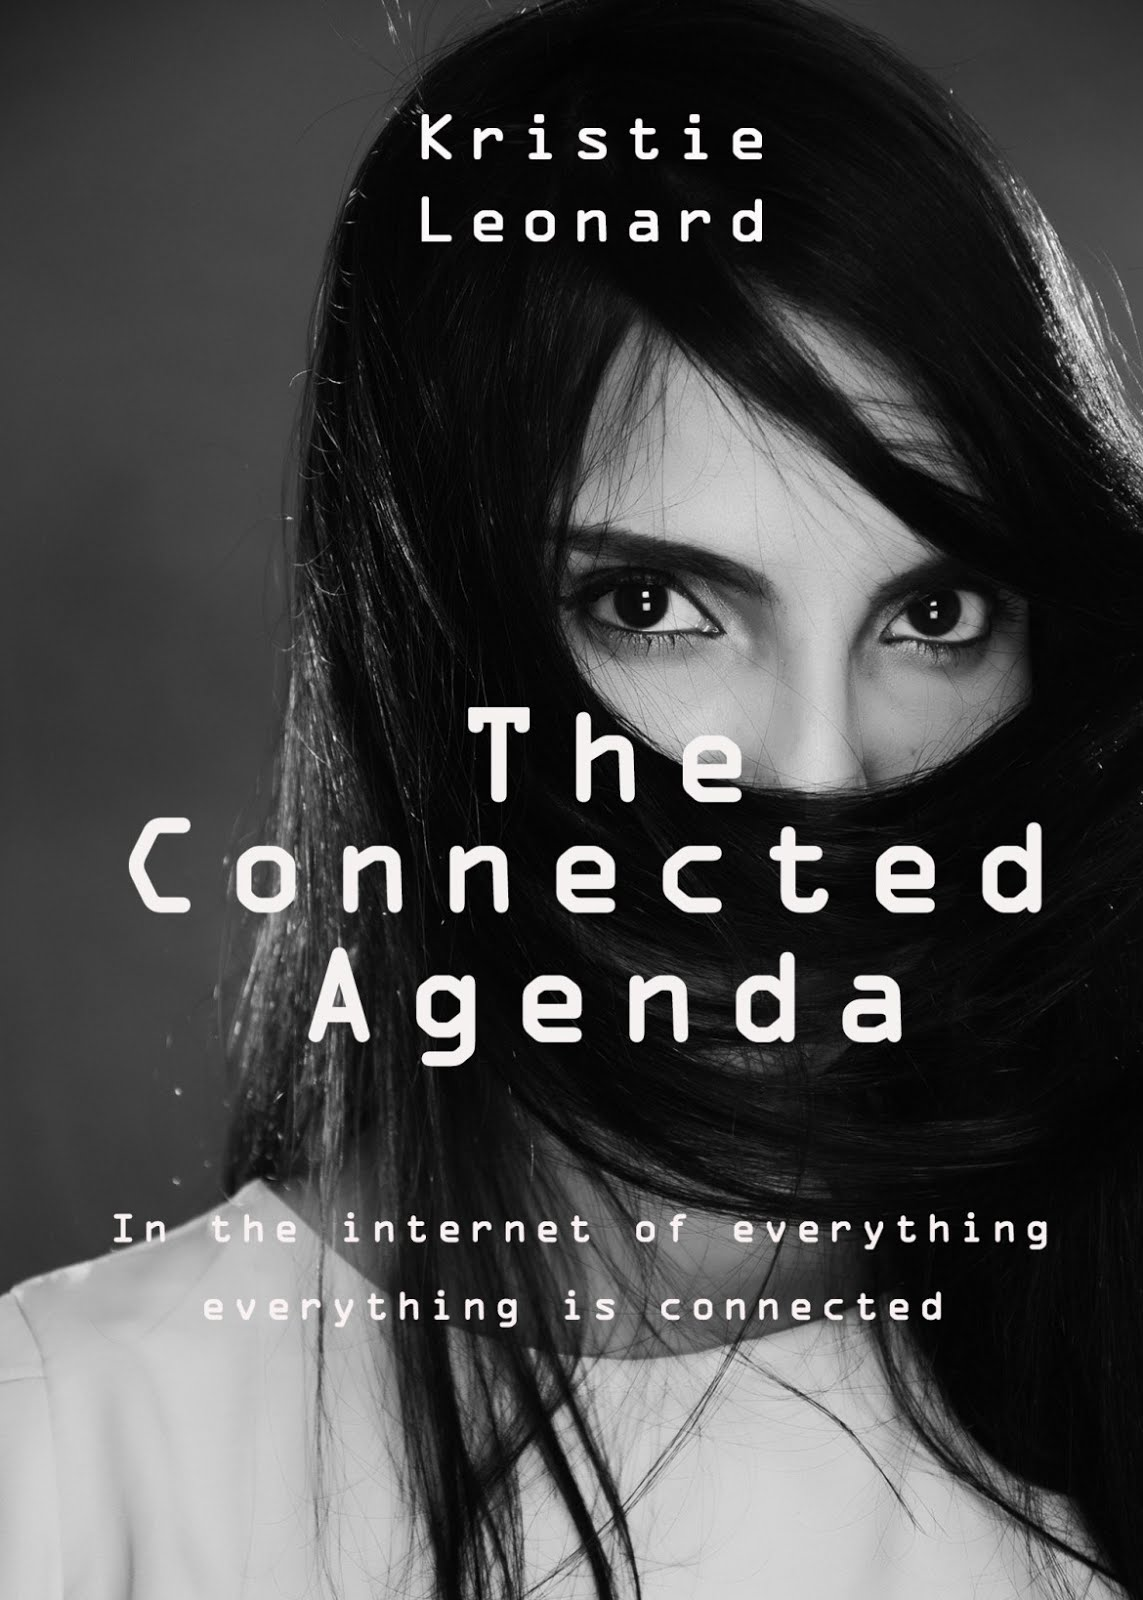 THE CONNECTED AGENDA